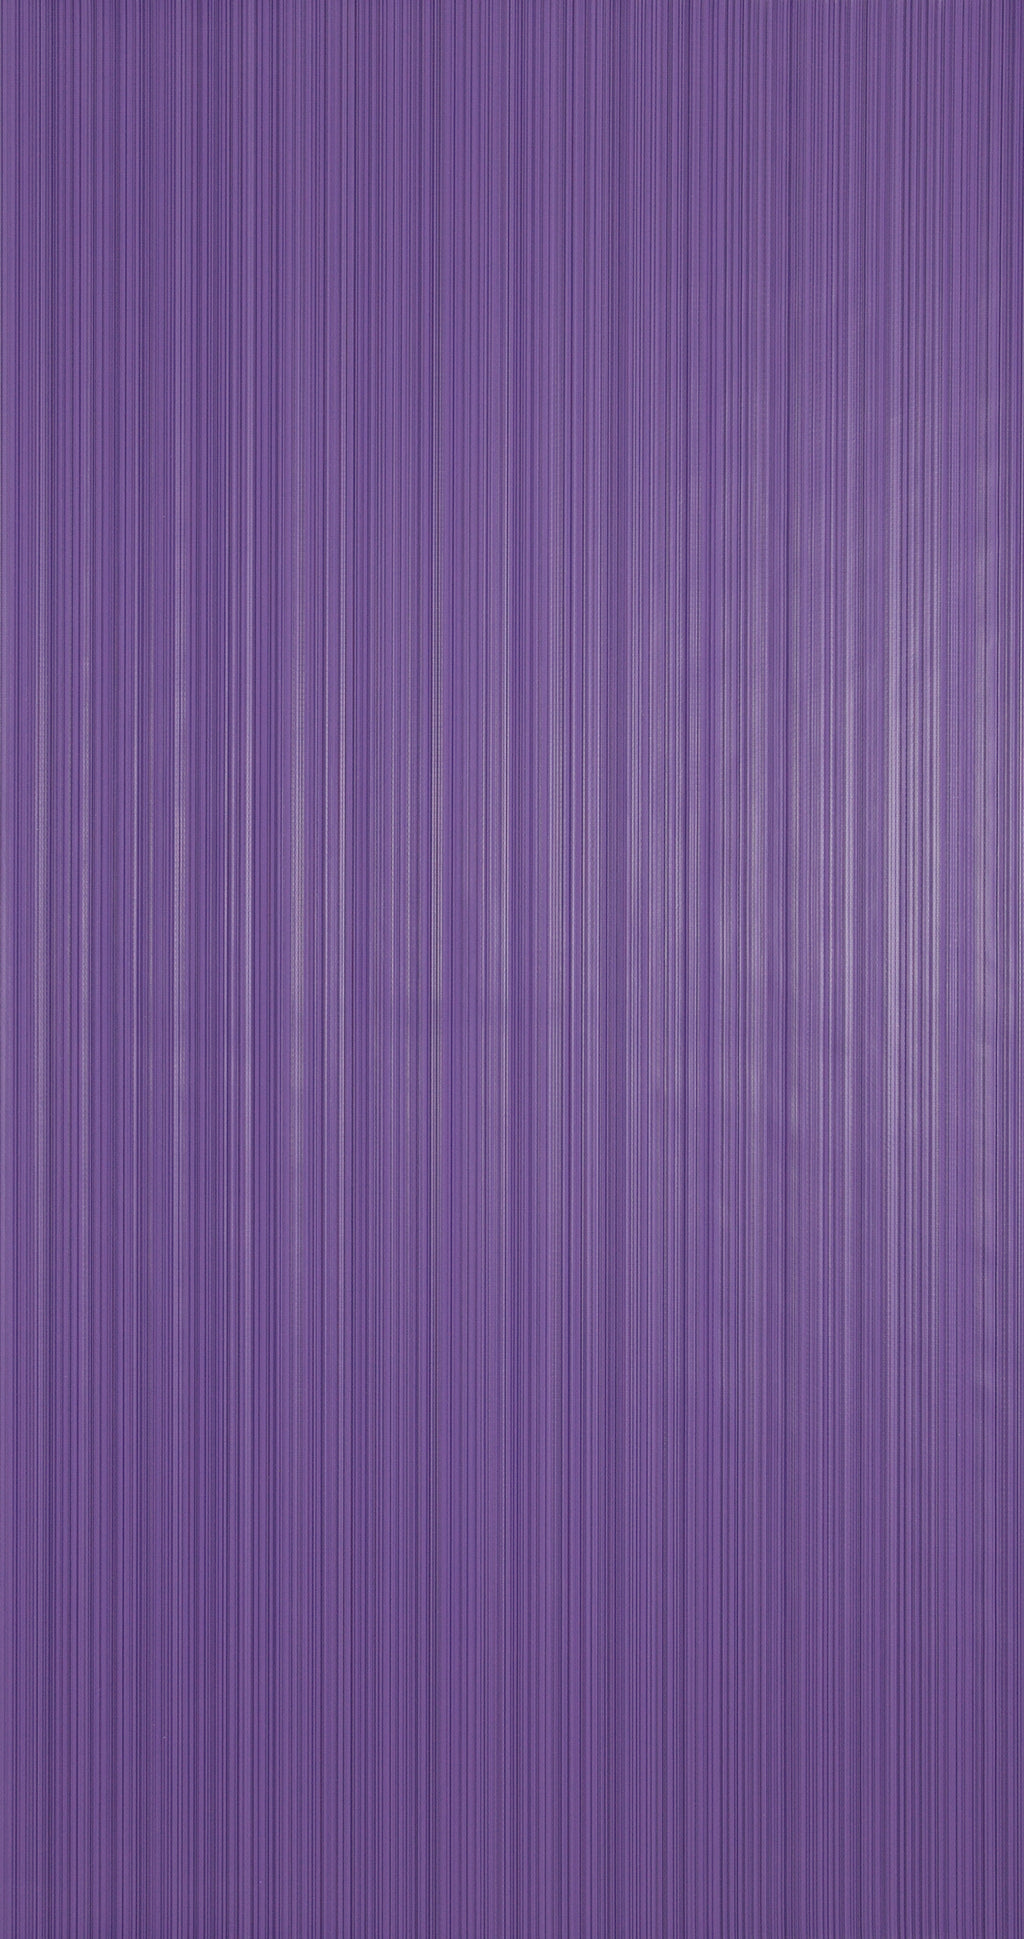 the textured surface provides a sense of depth to your walls, making it not only a practical choice, but a stylish one as well. . Purple Commercial wallpaper. Corporate wallpaper. Textured wallpaper. contract wallcovering